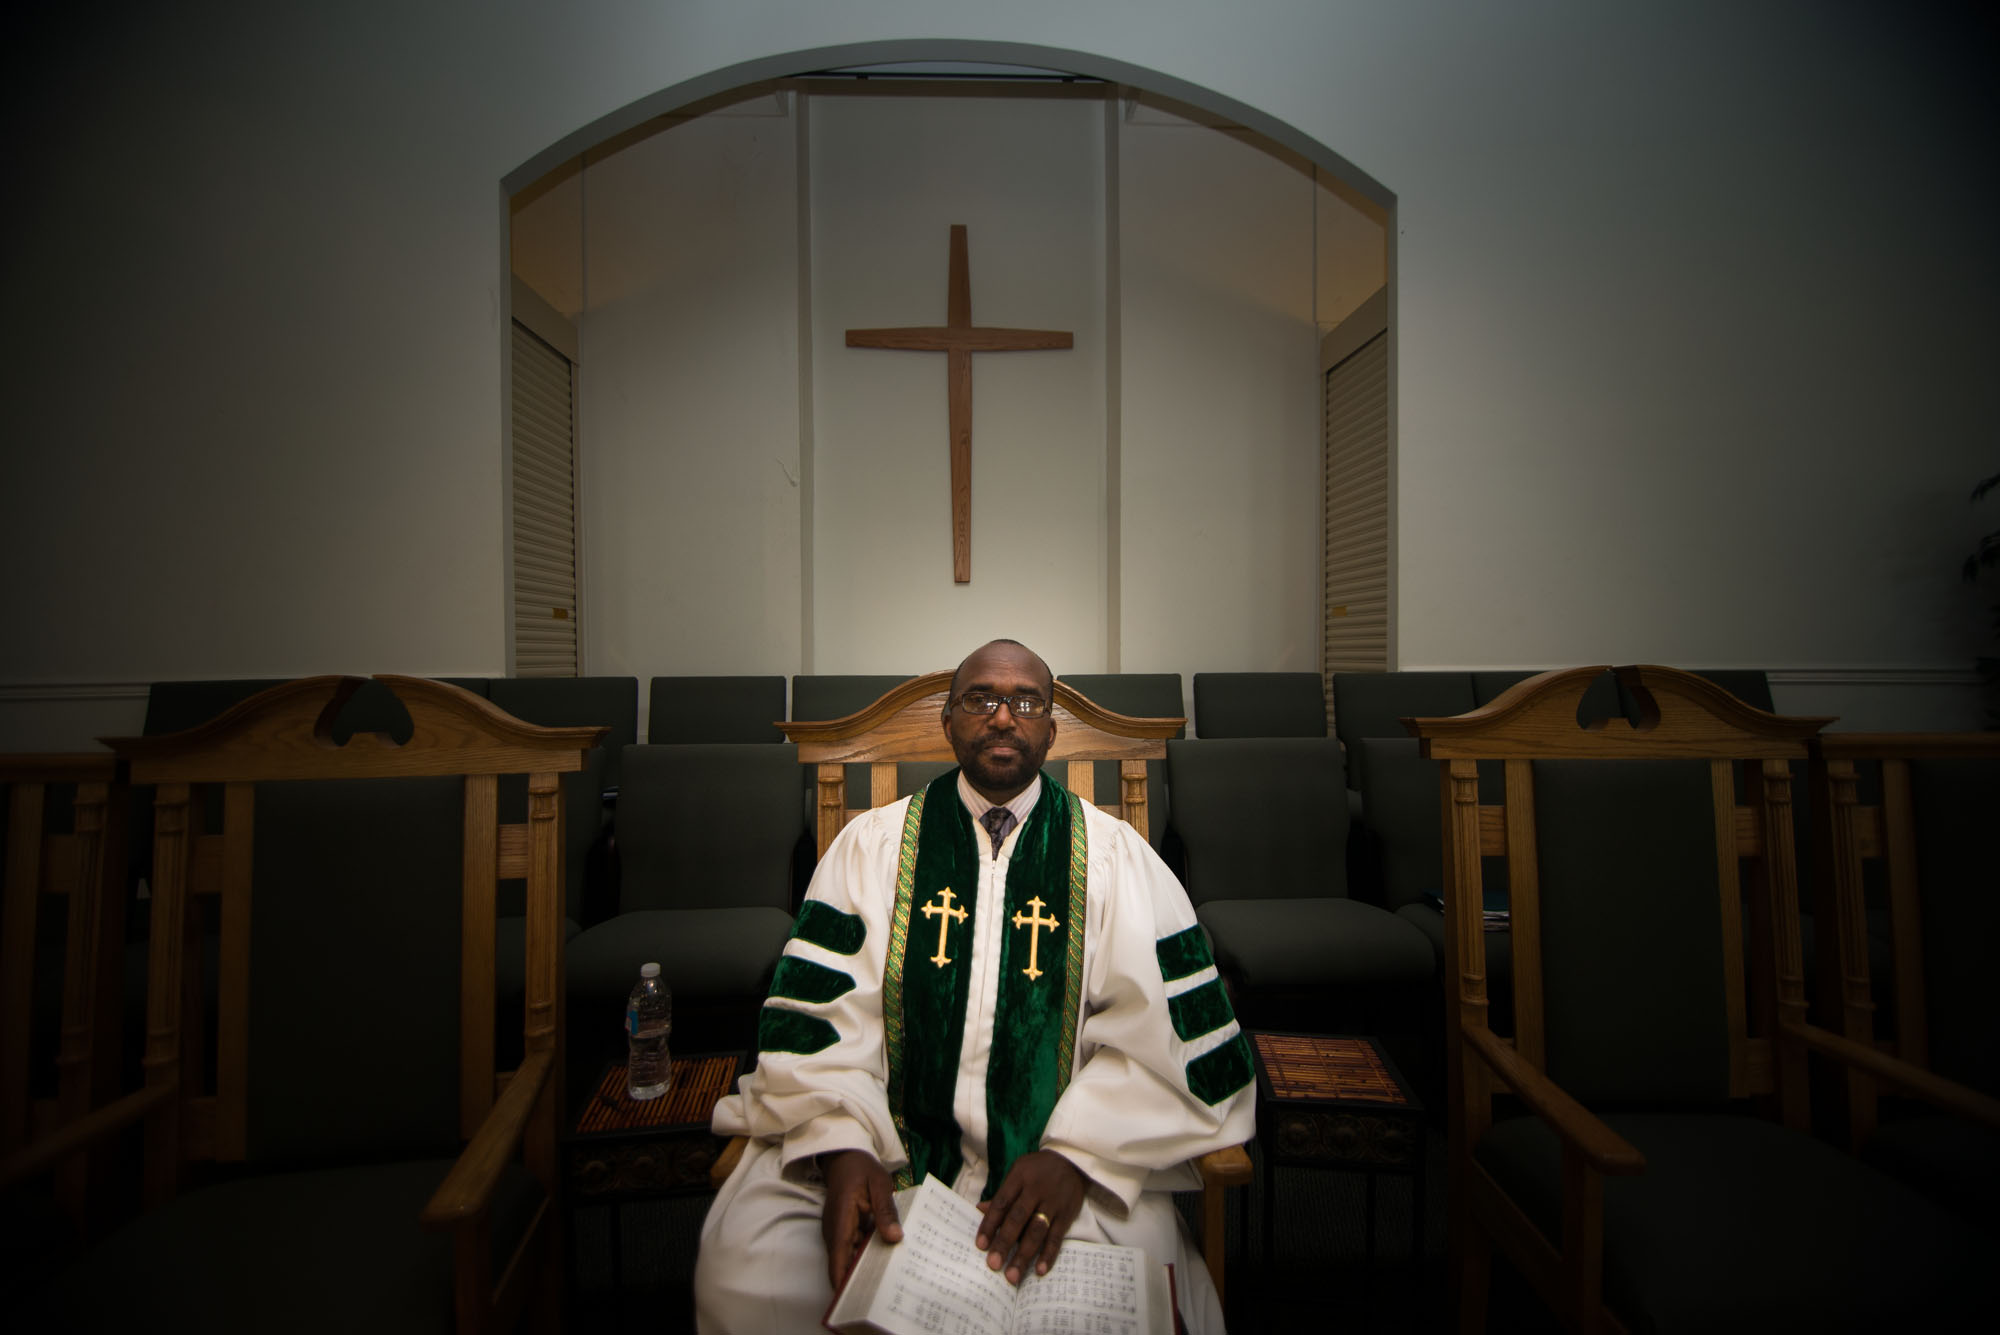 Rev. Napoleon Divine preaches of calm and unity in such a time. He is from Liberia and says that the young people who began the protests and voiced anger at the firefighters for not stopping the fire, are wrong. He wants his community to reach conclusions with city officials side-by-side in a peaceful way.